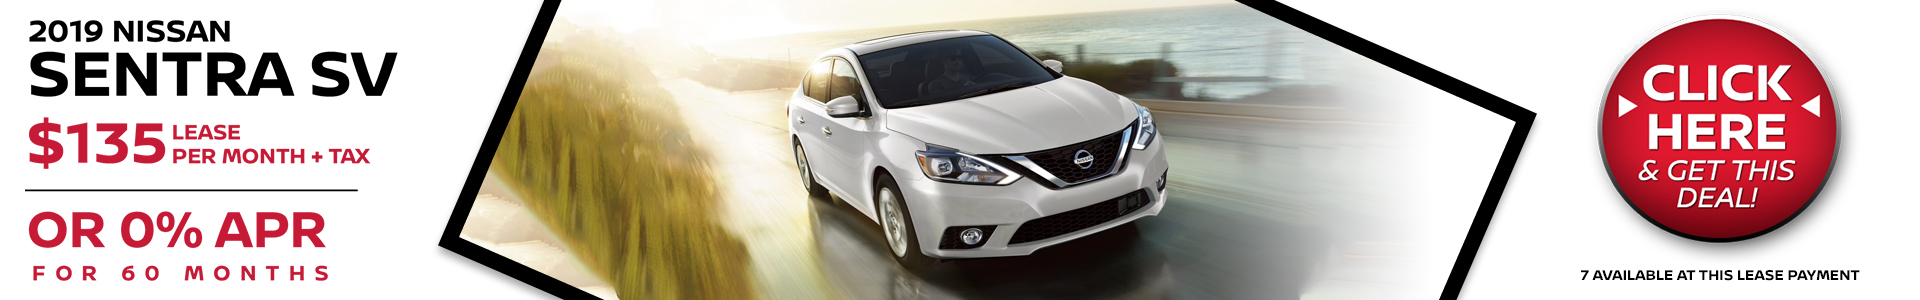 Mossy Nissan - Nissan Sentra $135 Lease